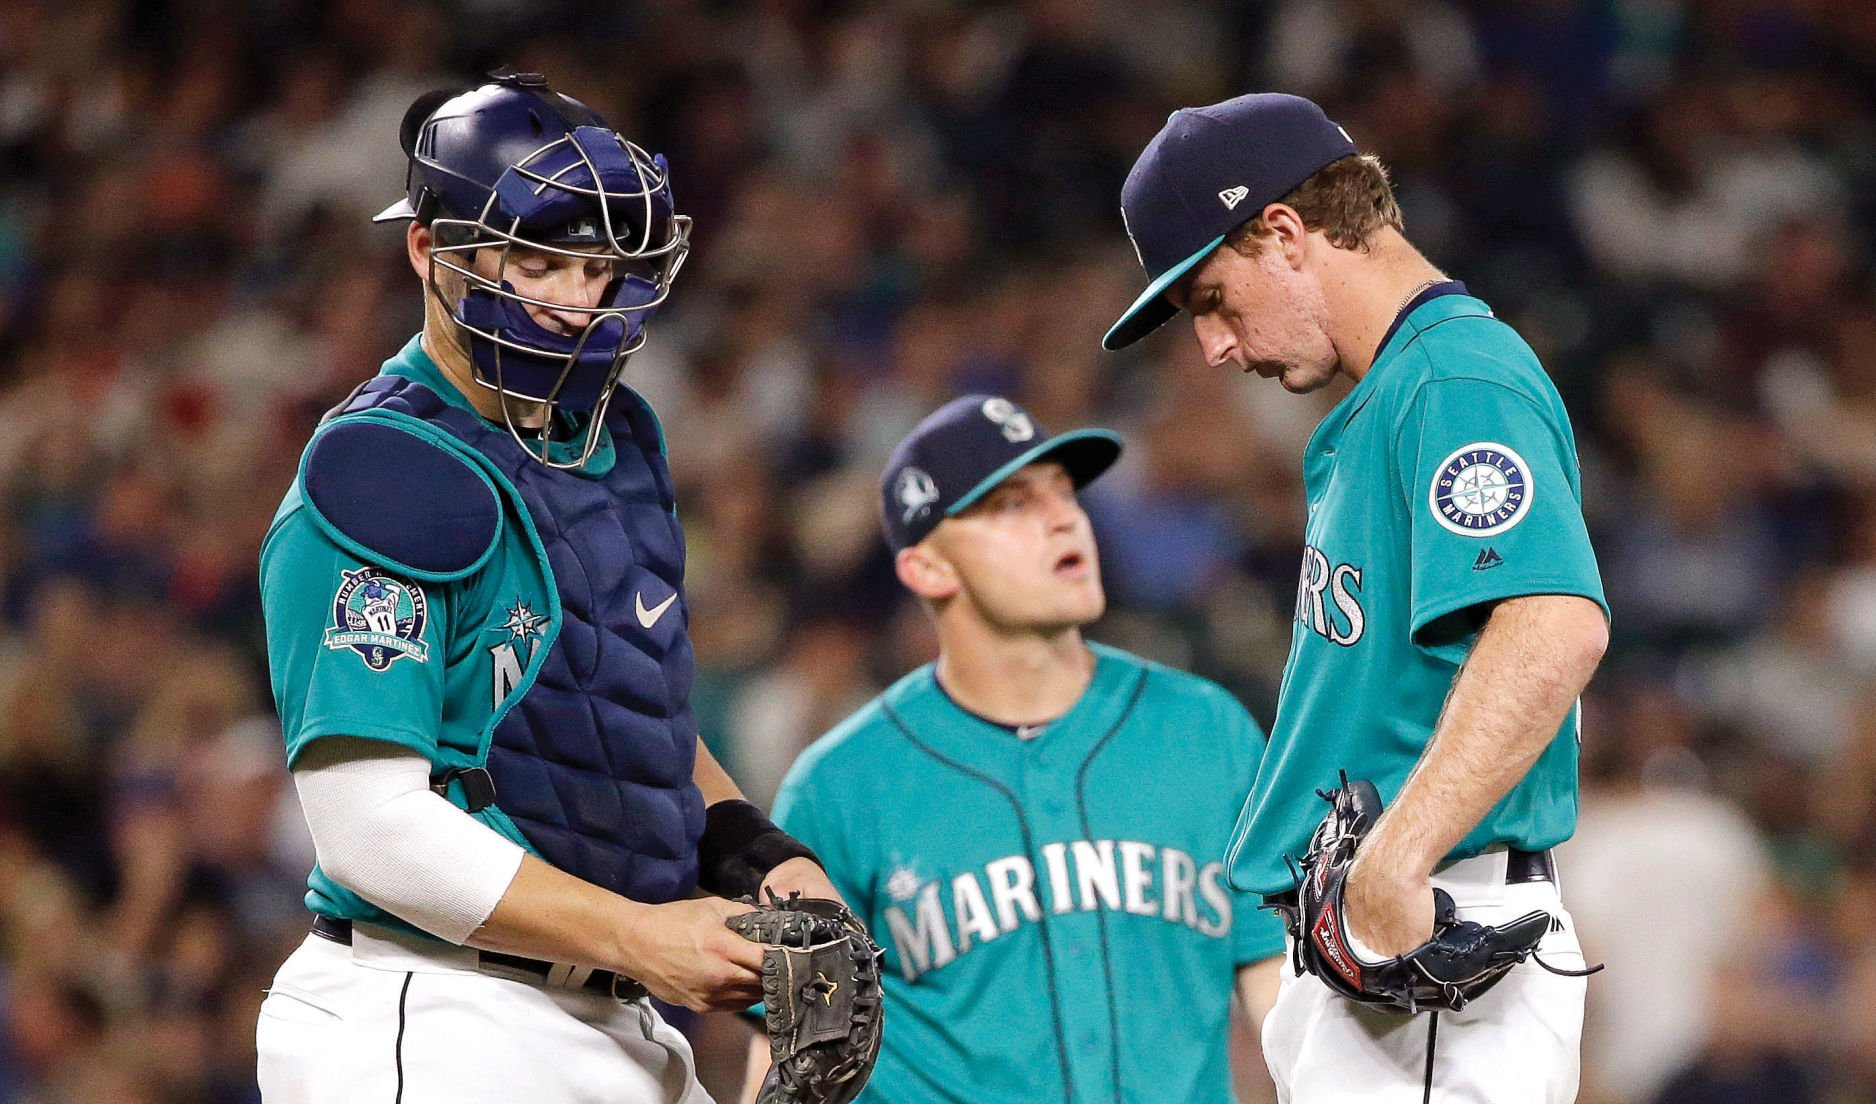 Mariners' James Paxton placed on 10-Day DL